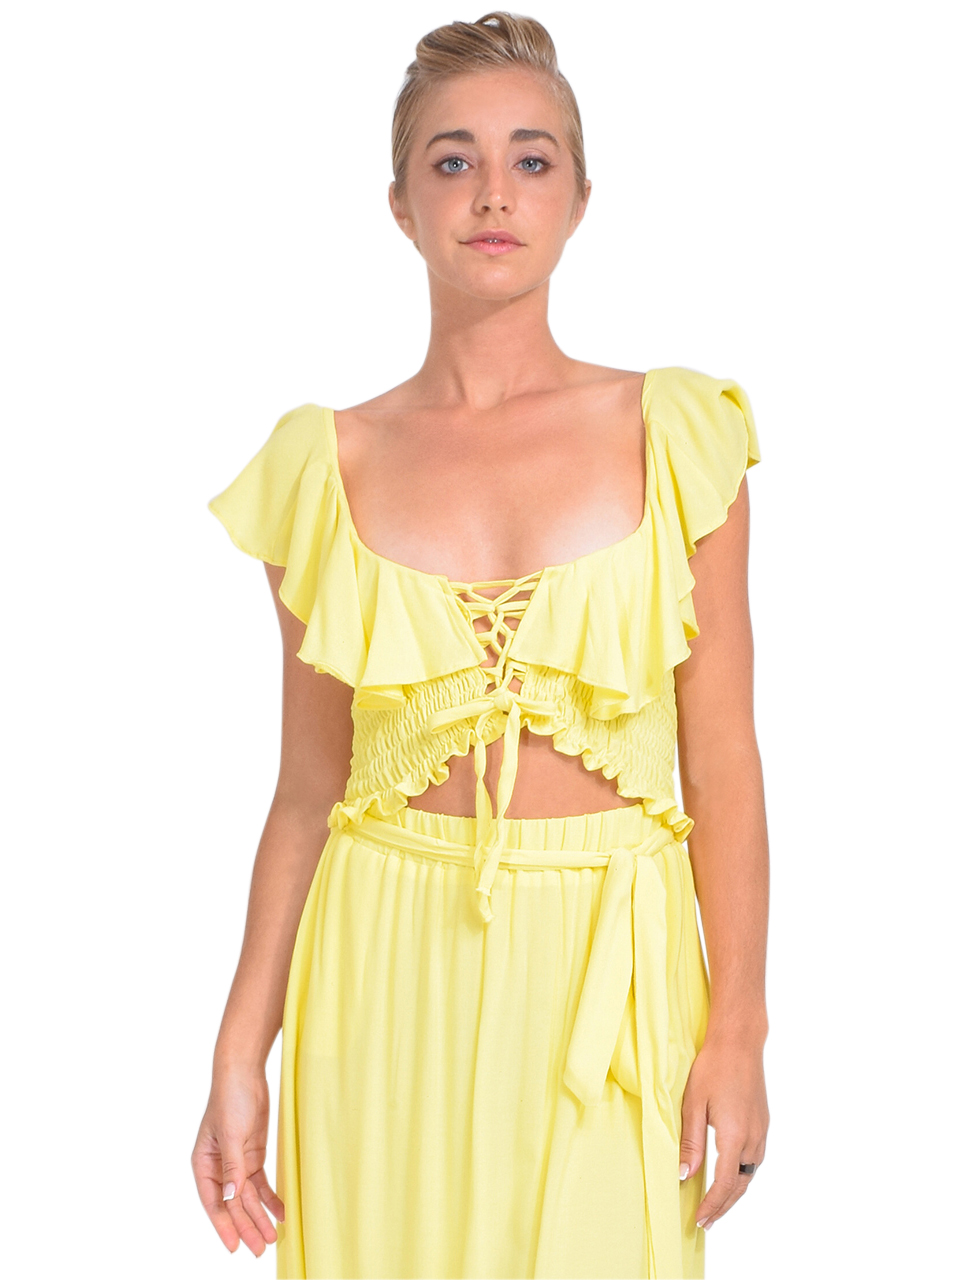 KASIA Sifnos Crop Top in Yellow Front View 1 x1https://cdn11.bigcommerce.com/s-3wu6n/products/33979/images/113176/DSC_0401_Full__37741.1620695904.244.365.jpg?c=2x2